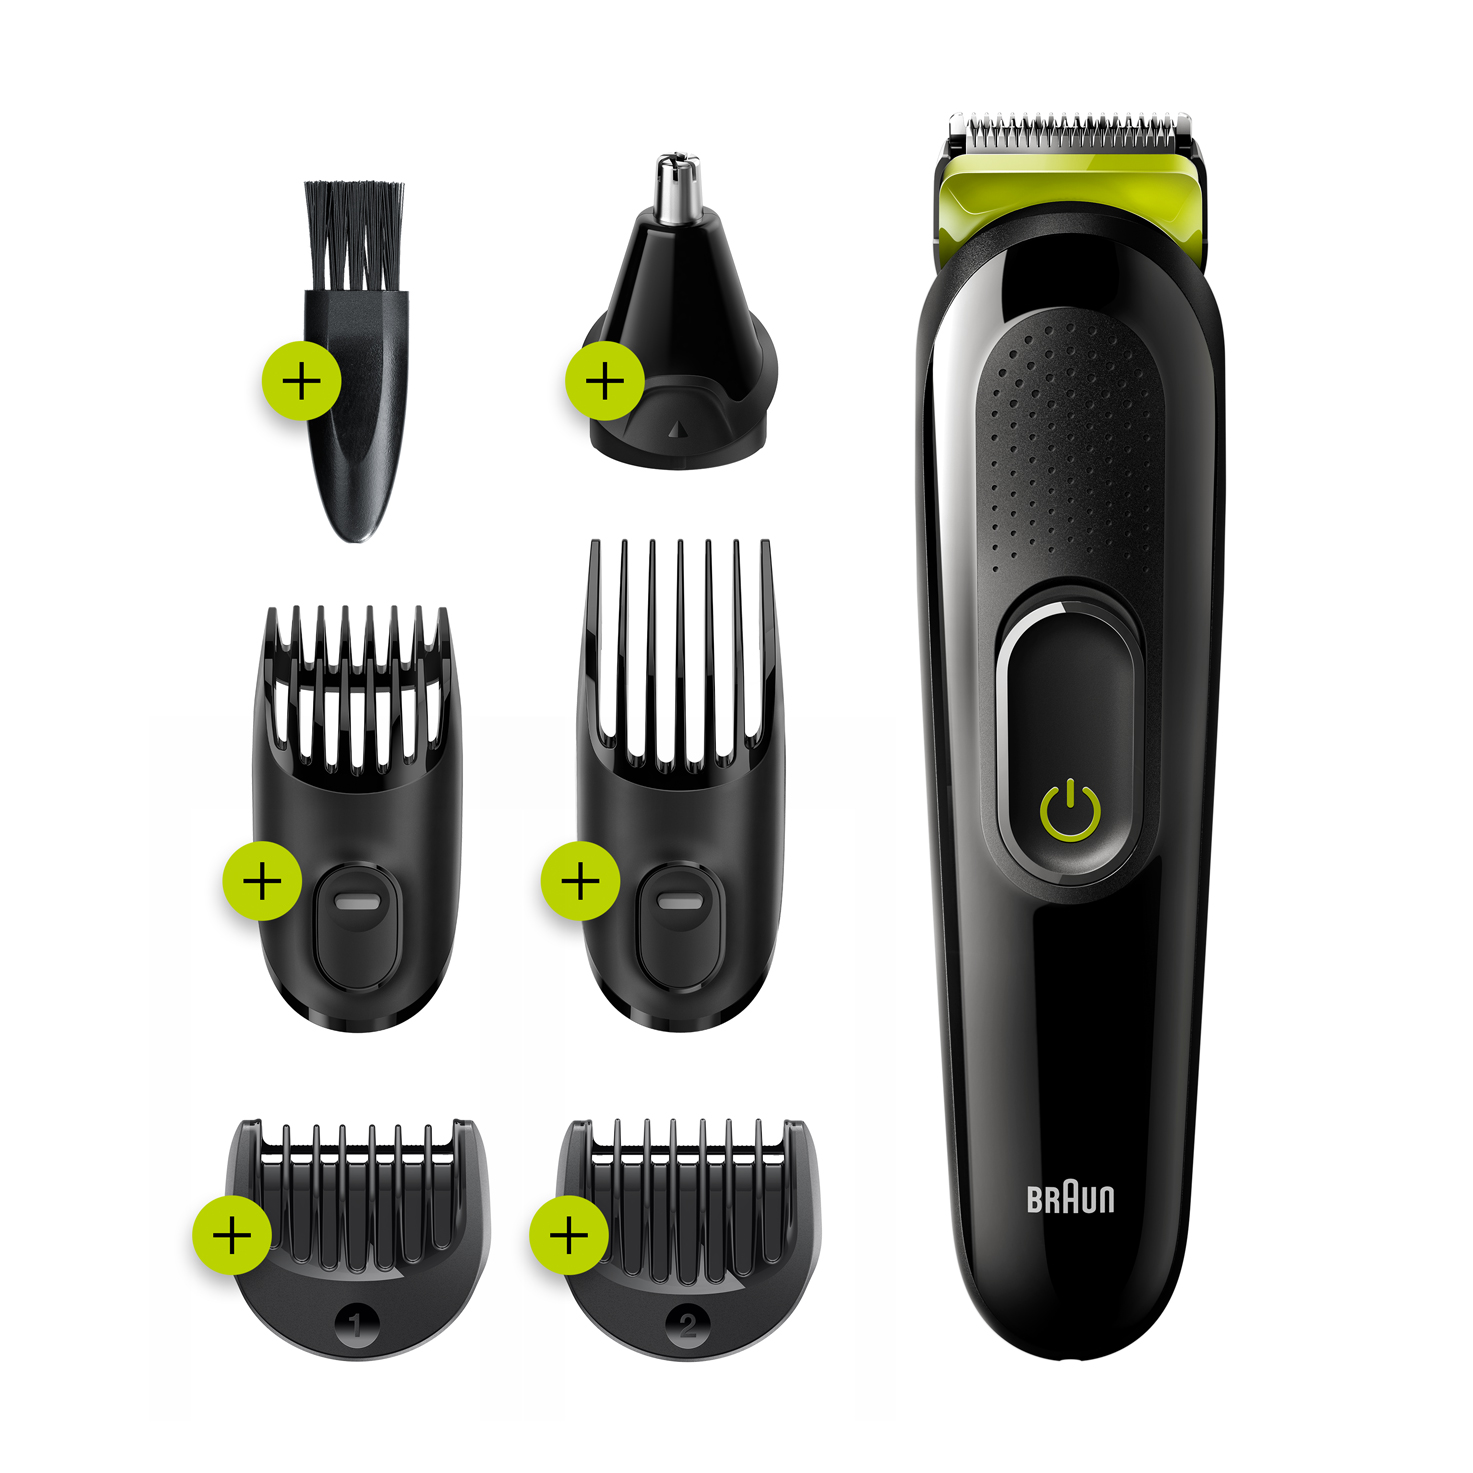 Braun All in one trimmer 3 MGK3221